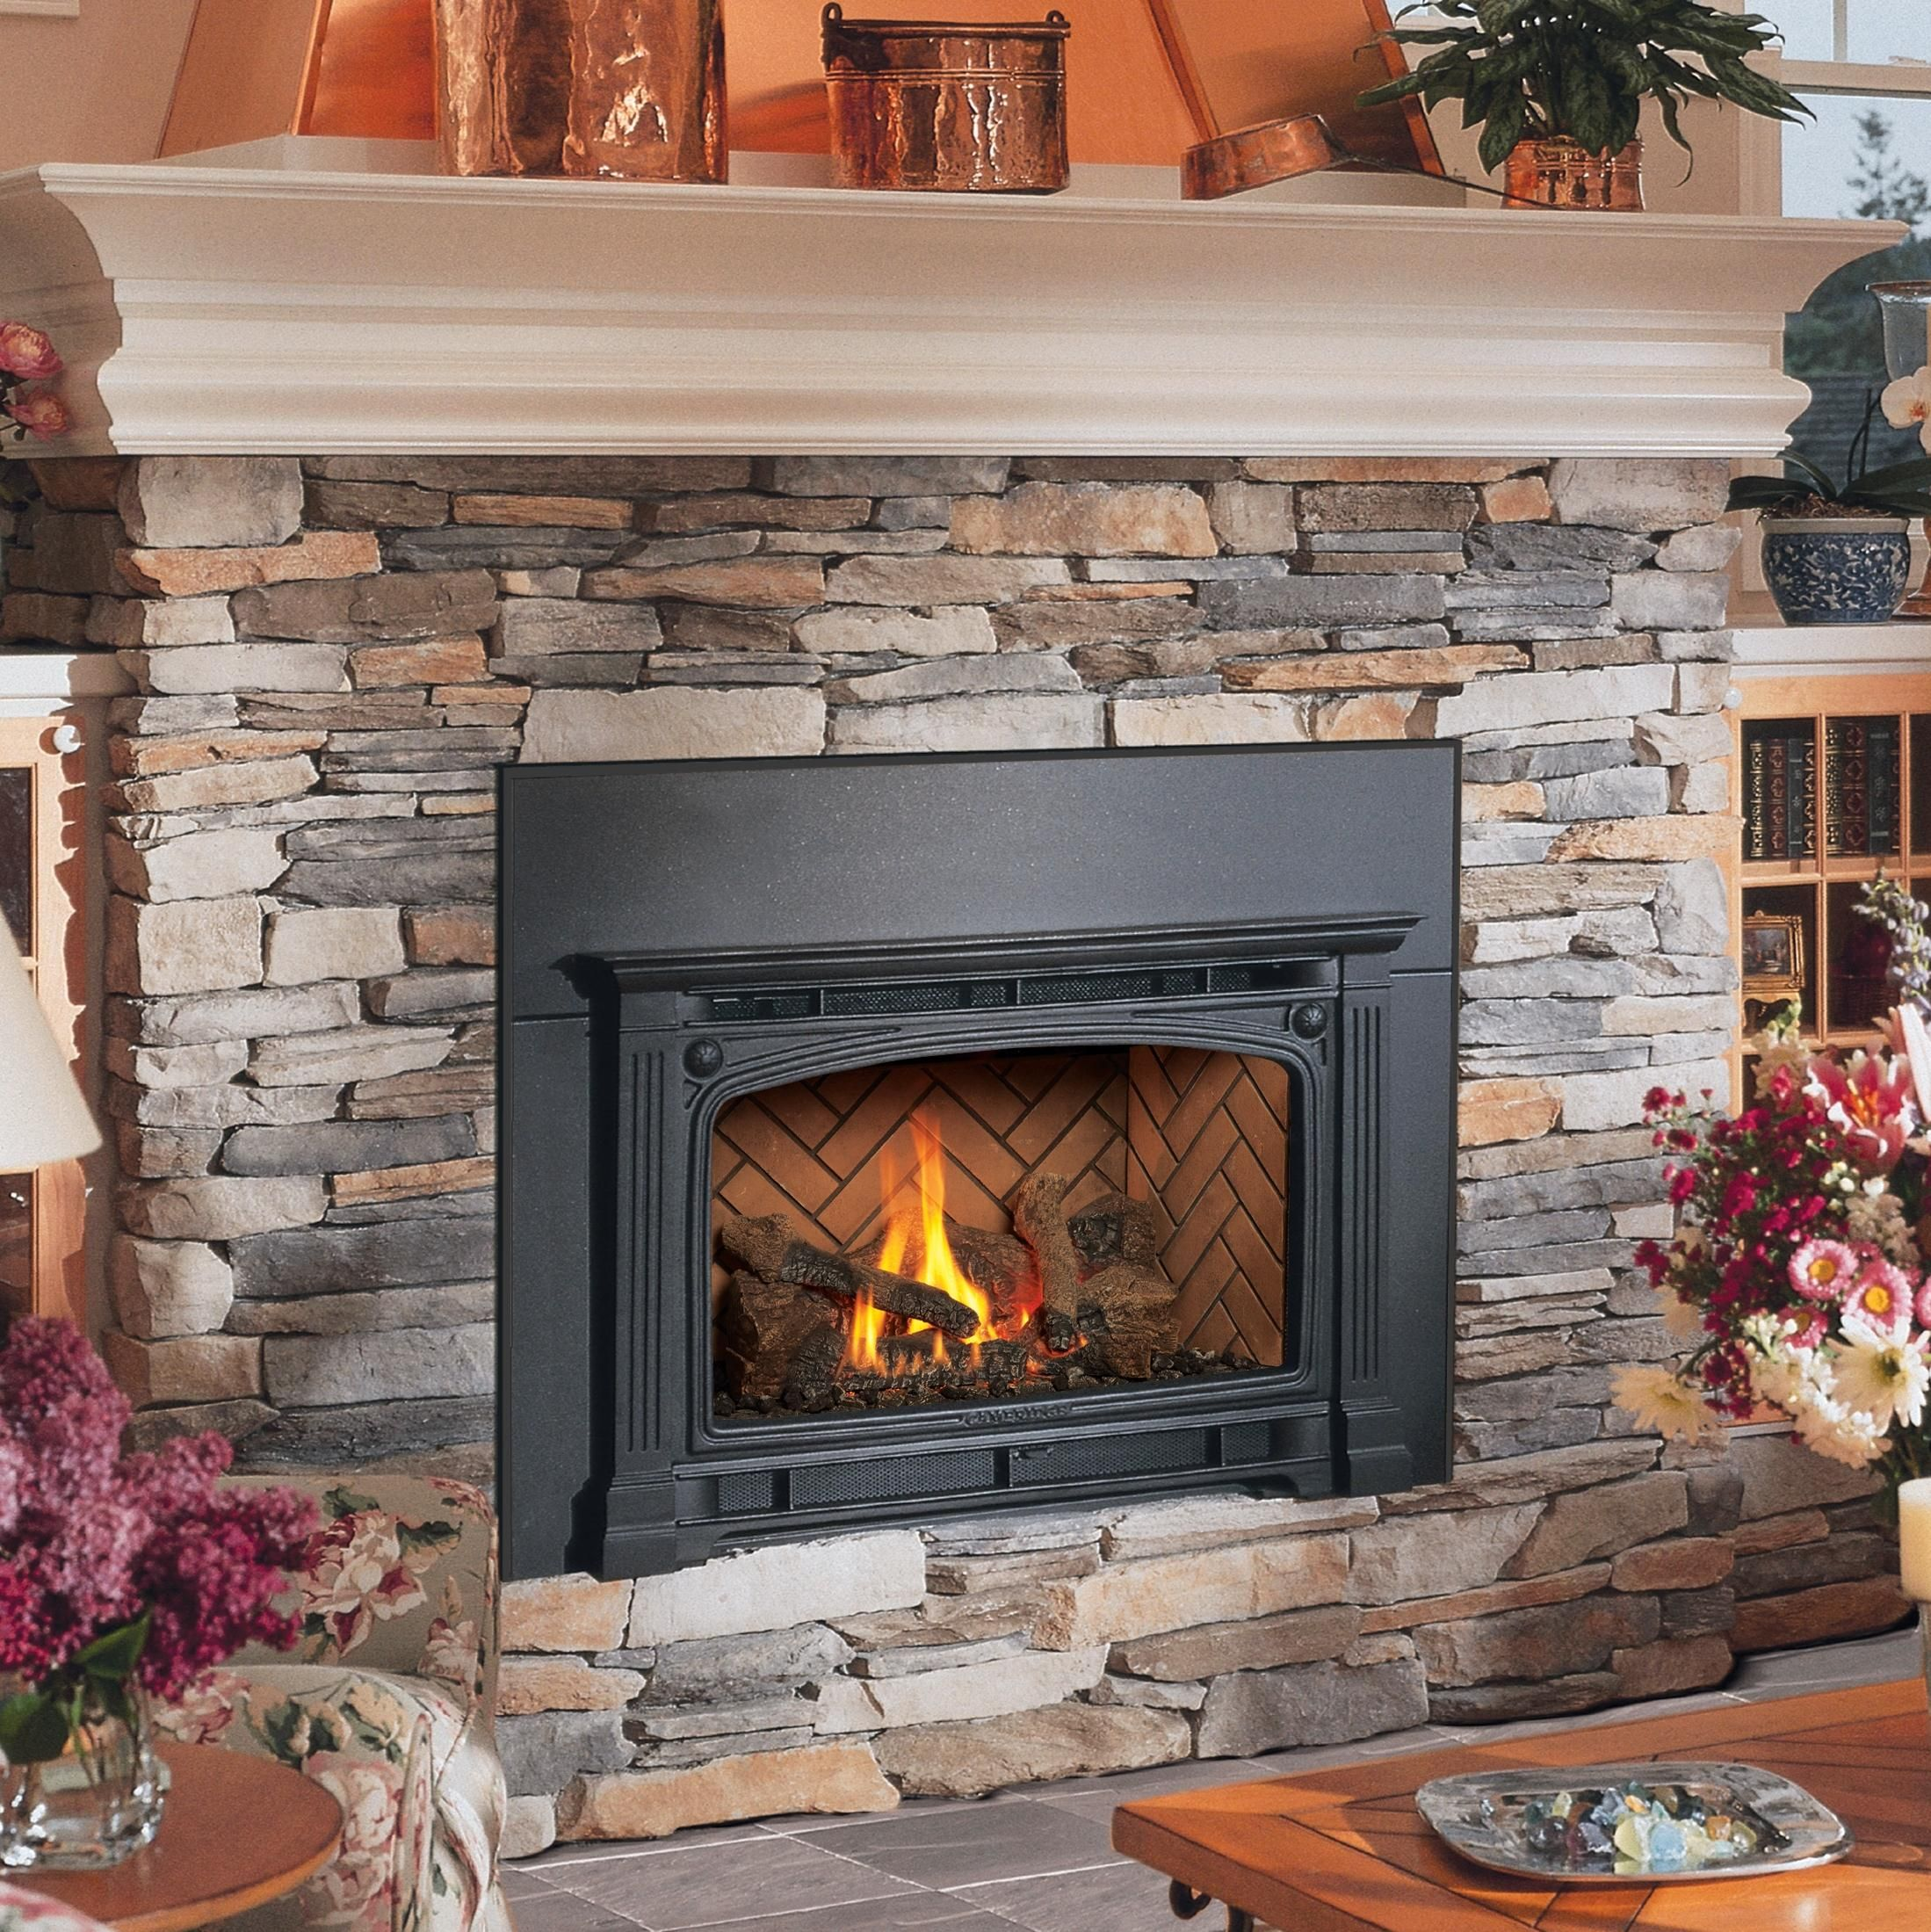 fireplace spa ambiance inserts patio installation and inspiration gas country stove insert